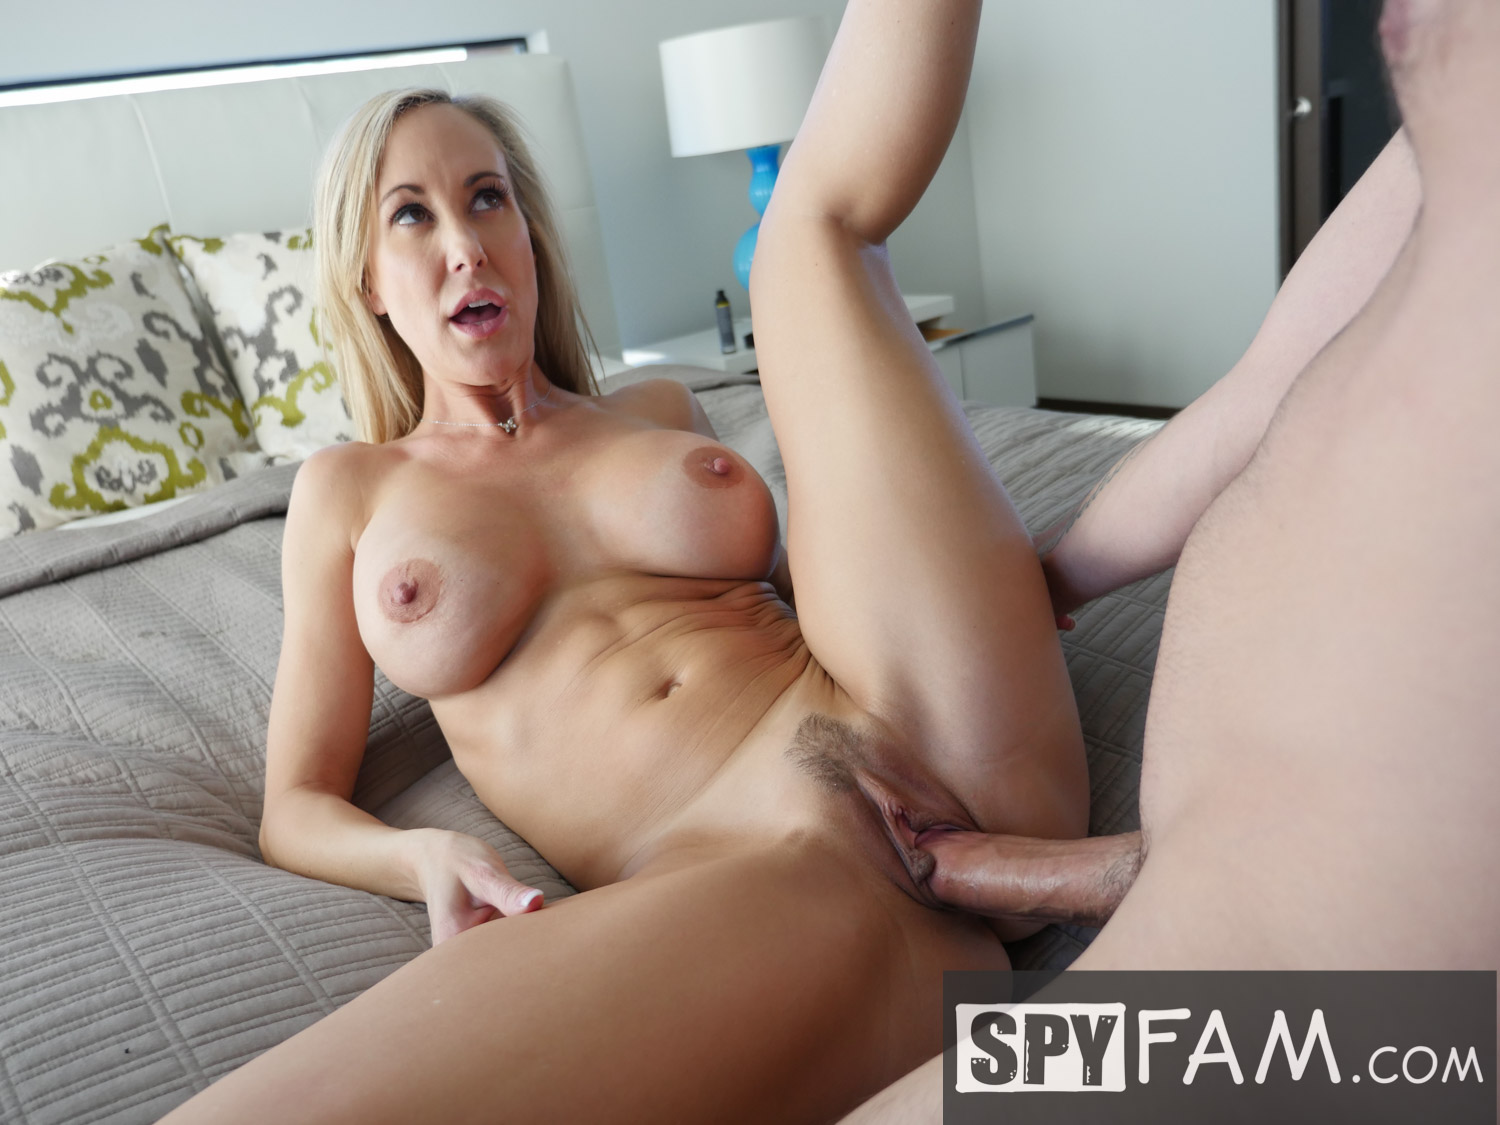 Horny blonde step sister lyra law orgasms on brothers cock Part 2